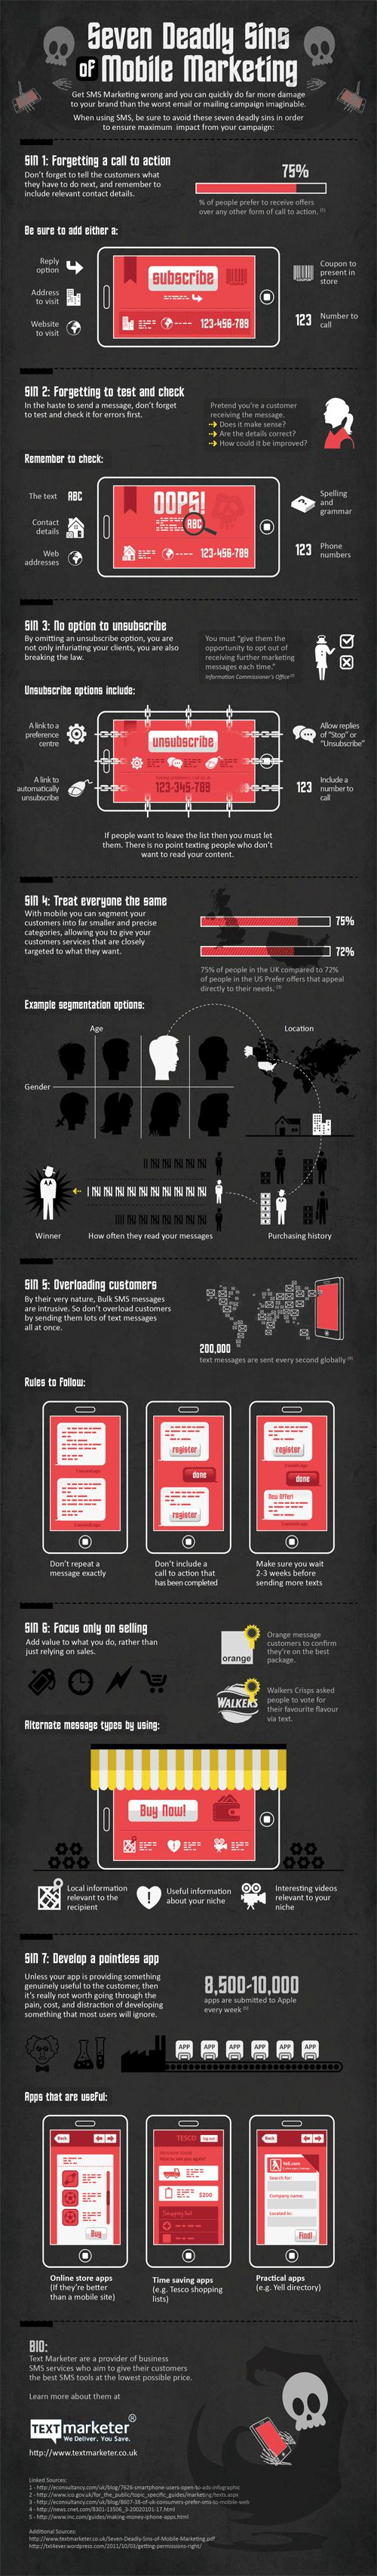 7 Deadly Sins of Mobile Marketing